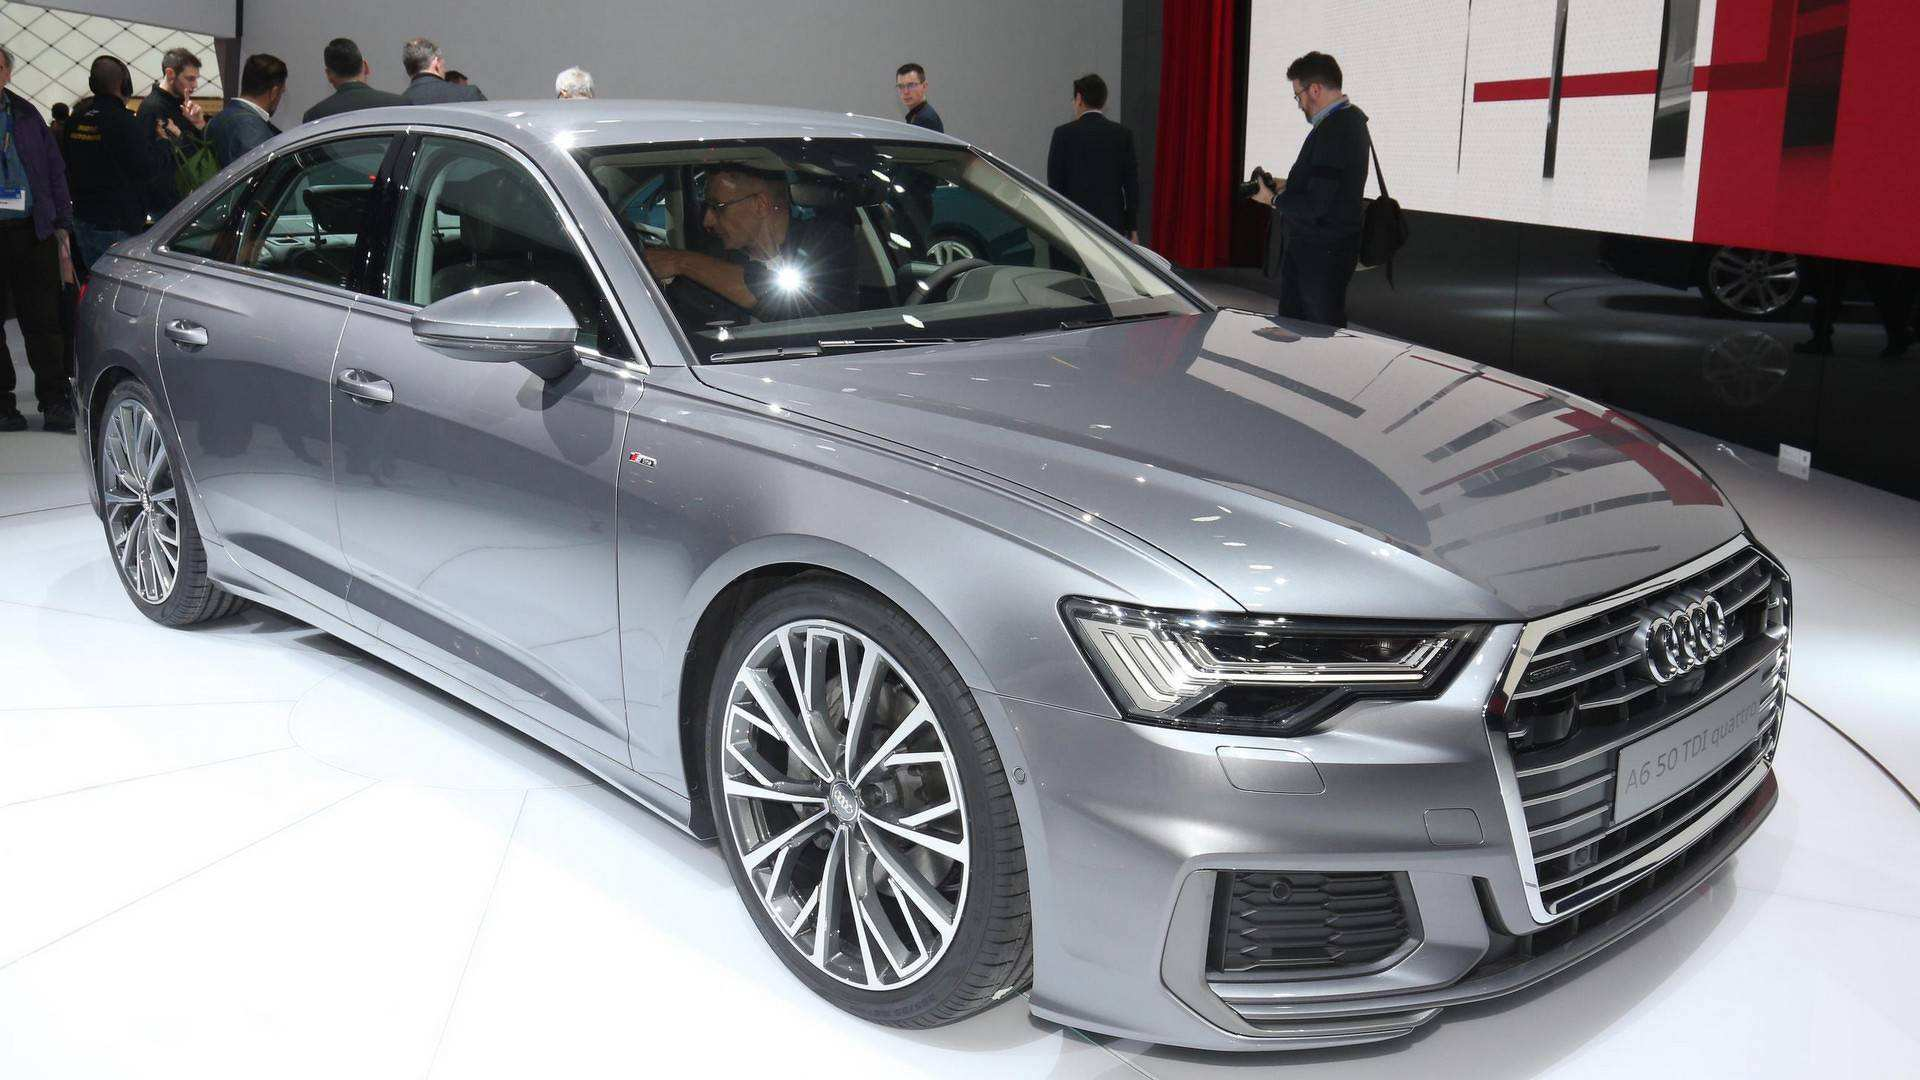 74 New 2019 Audi A6 Msrp History by 2019 Audi A6 Msrp